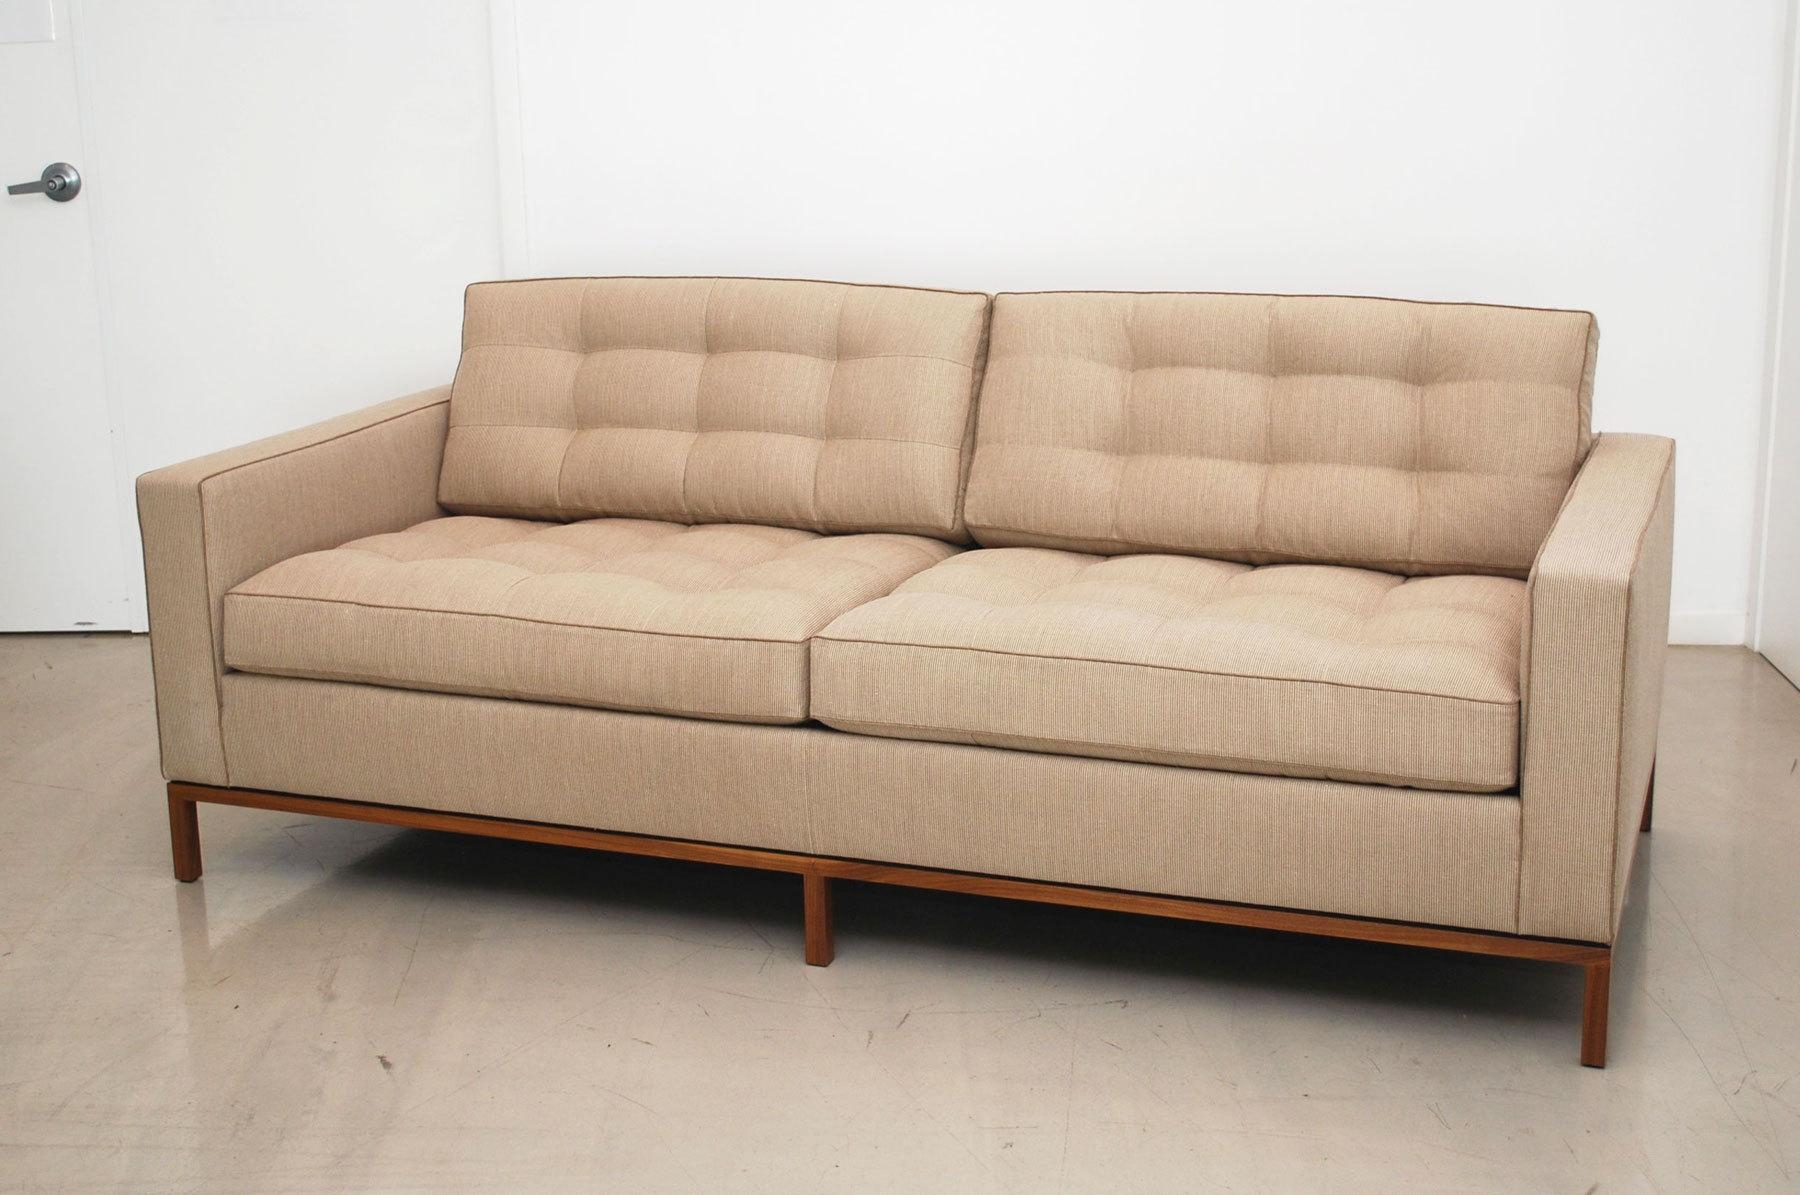 Florence Knoll Sofa | Home Decor & Furniture Pertaining To Florence Large Sofas (Image 4 of 20)